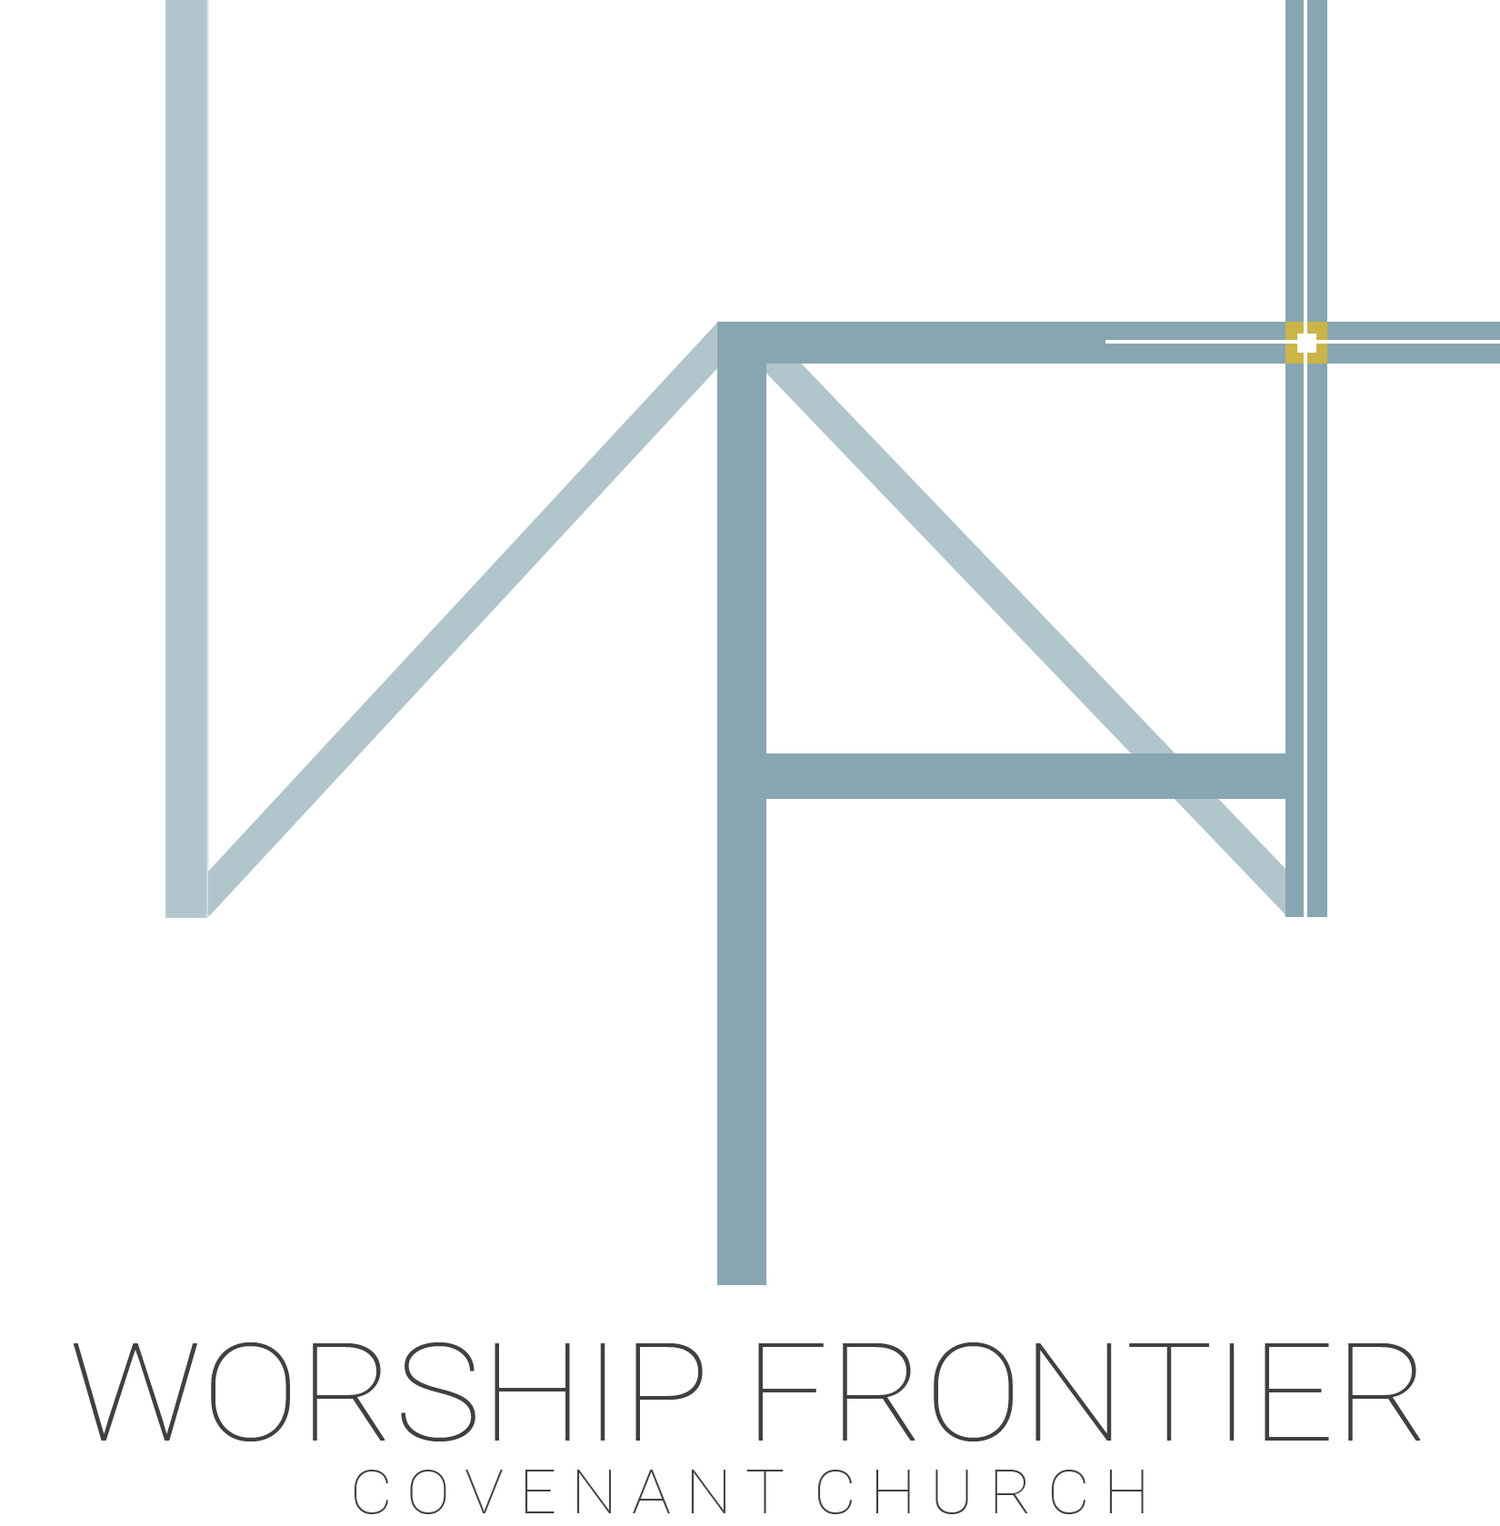 Worship frontier coventant church